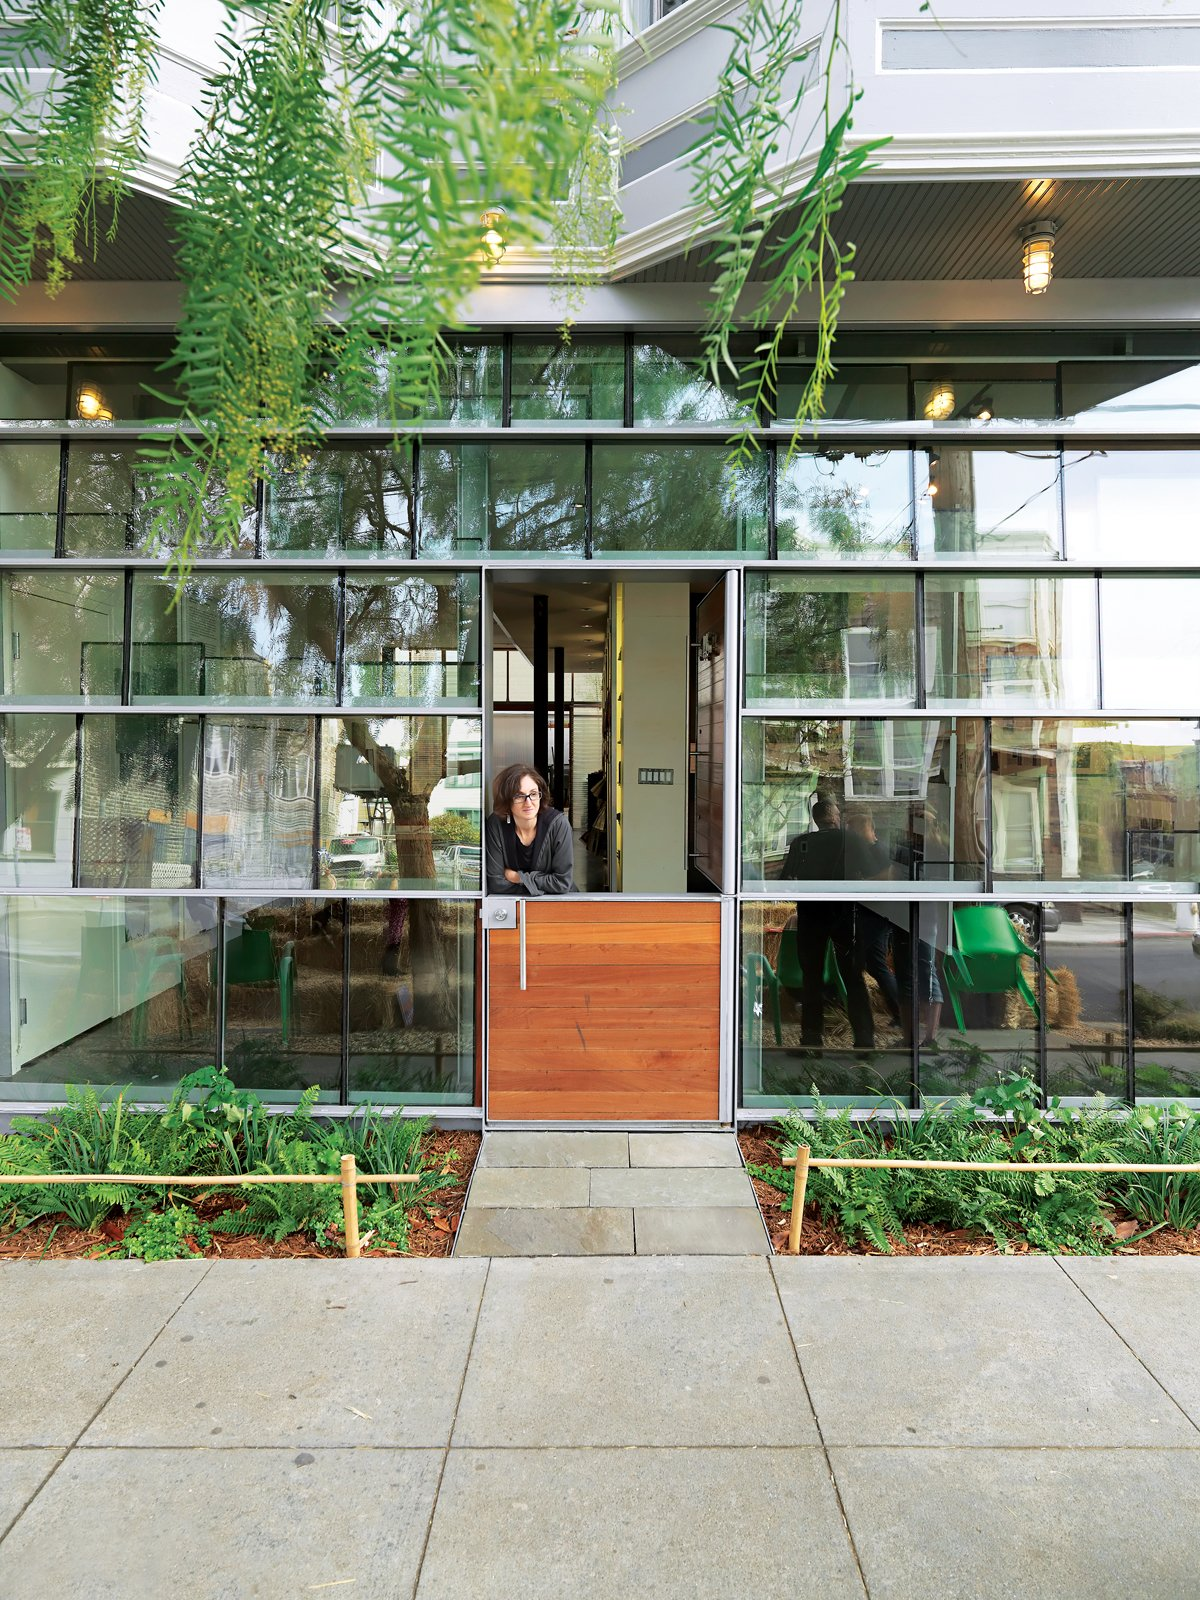 Dunbar and Astrakhan's low-cost, high-impact tour de force is a storefront facade constructed from salvaged double-insulated window glass panels arranged in a shingle pattern.